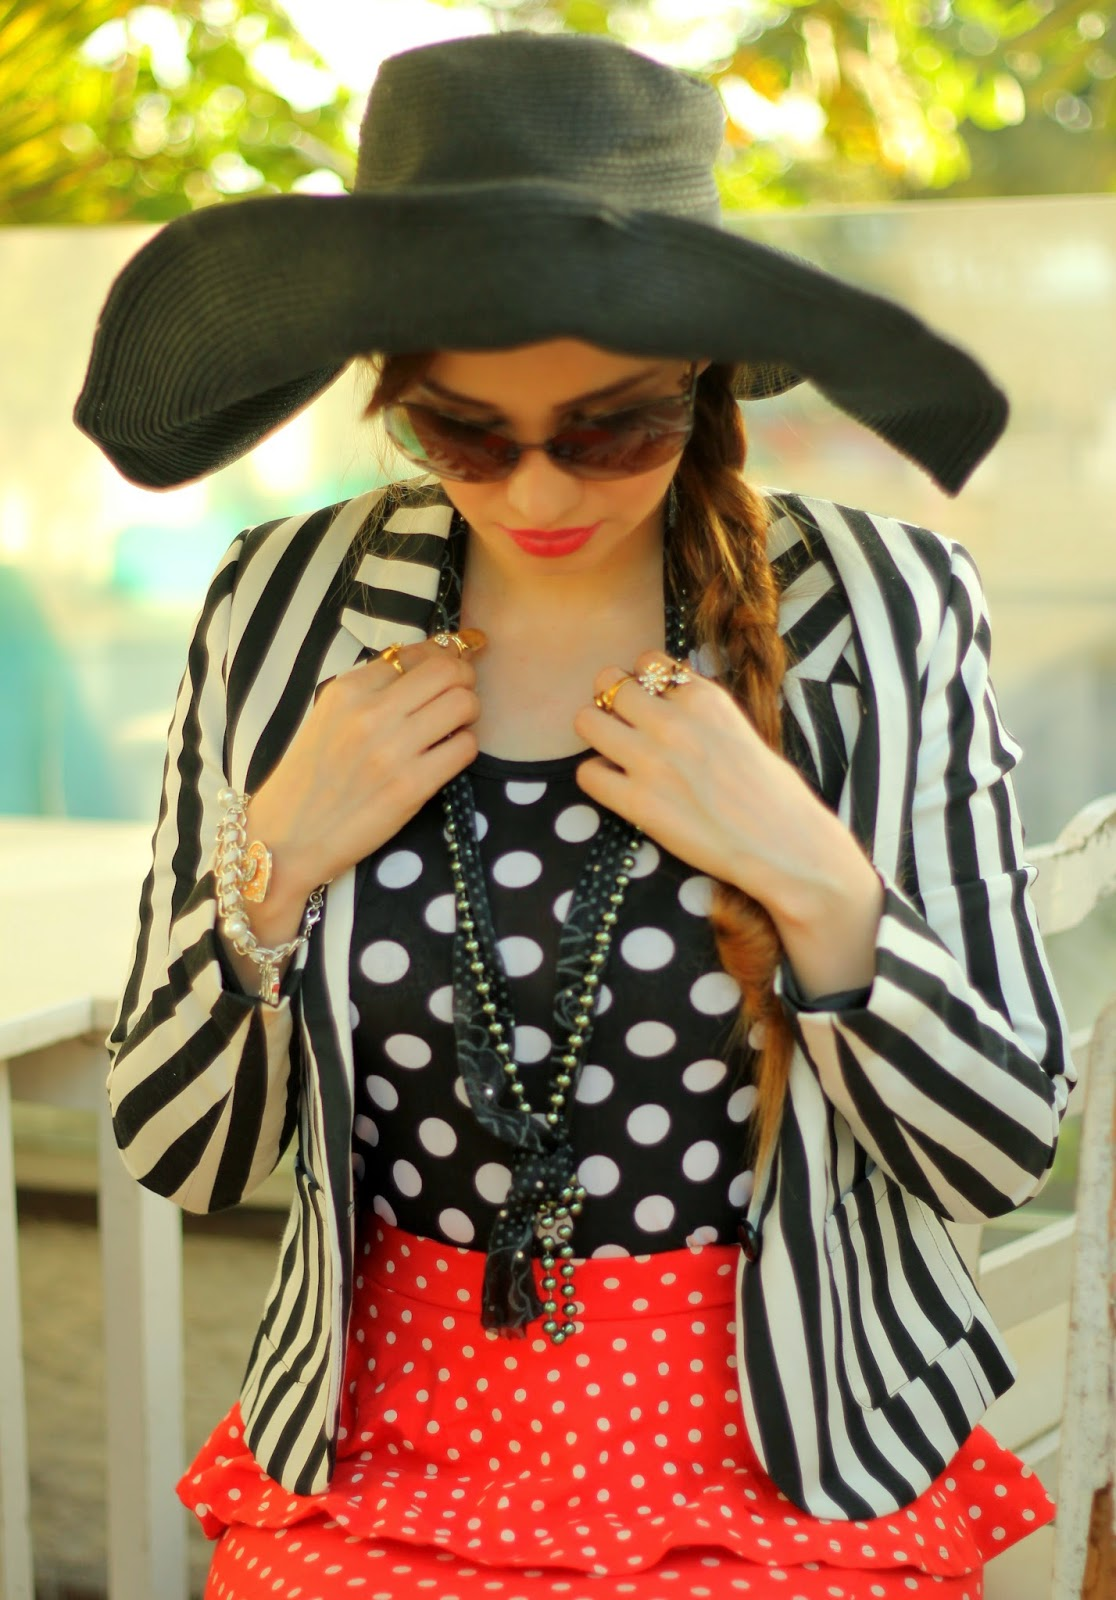 Pearl Scarf Necklace,Striped Blazer,Polka dot top & Polka dot skirt